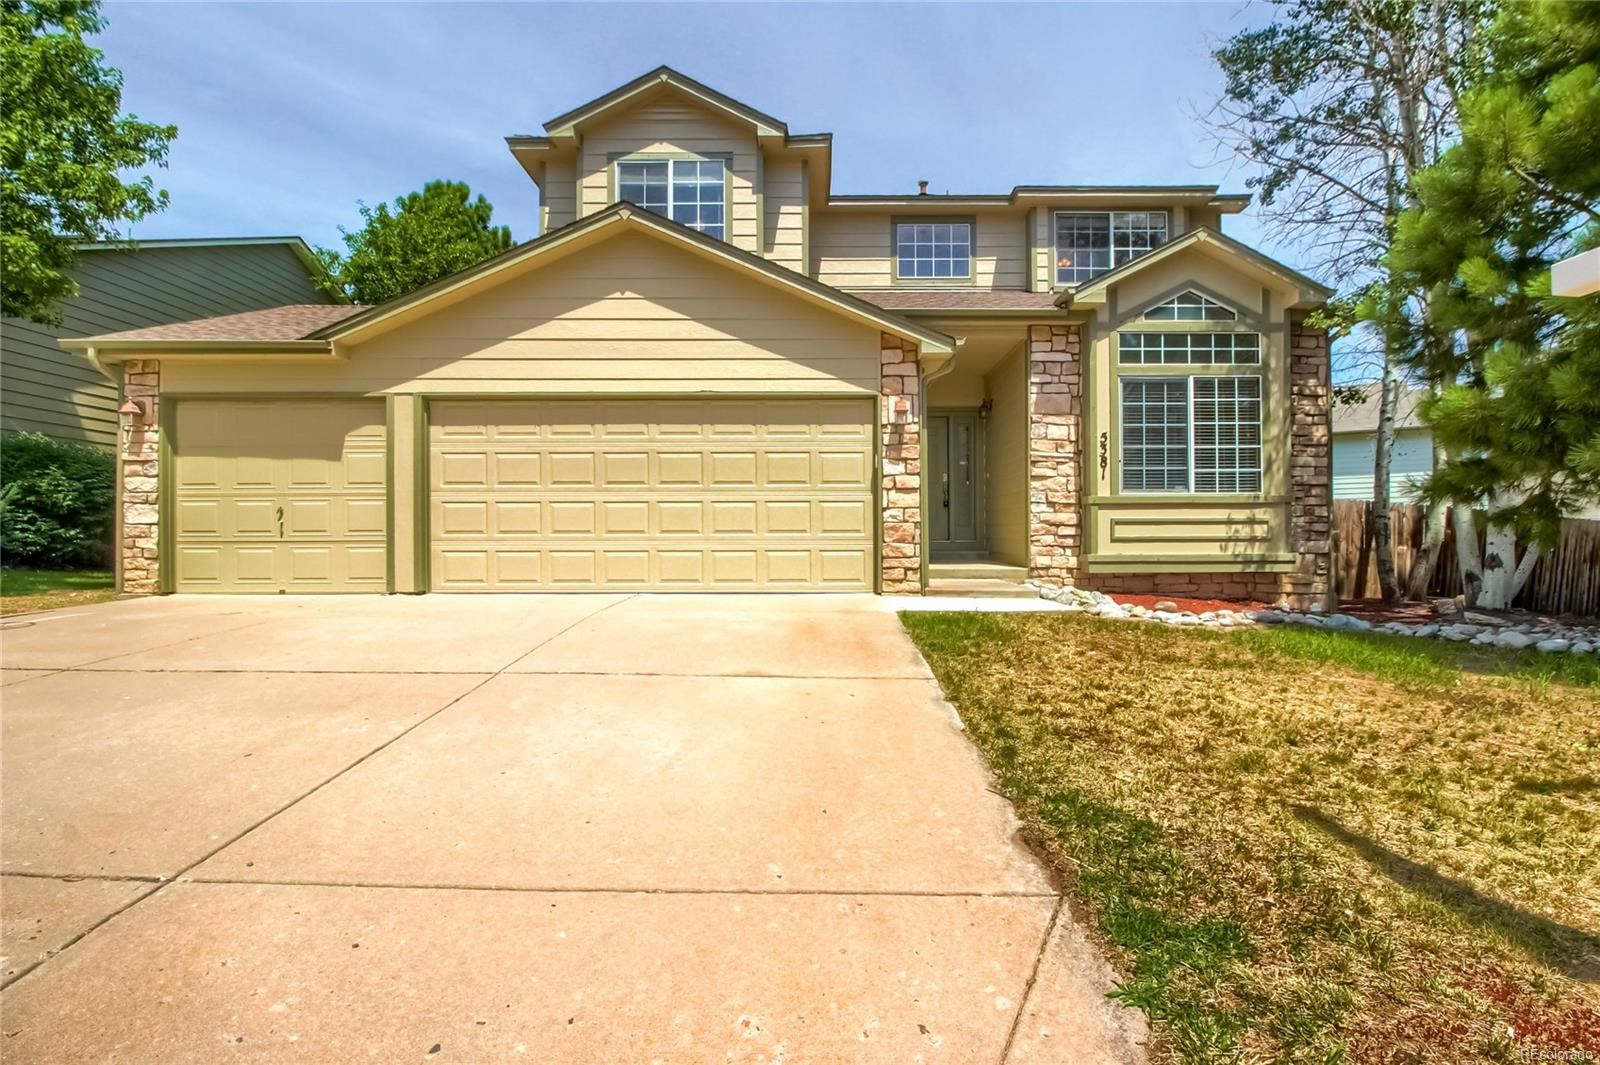 MLS# 1635730 - 1 - 5381 S Danube Court, Centennial, CO 80015